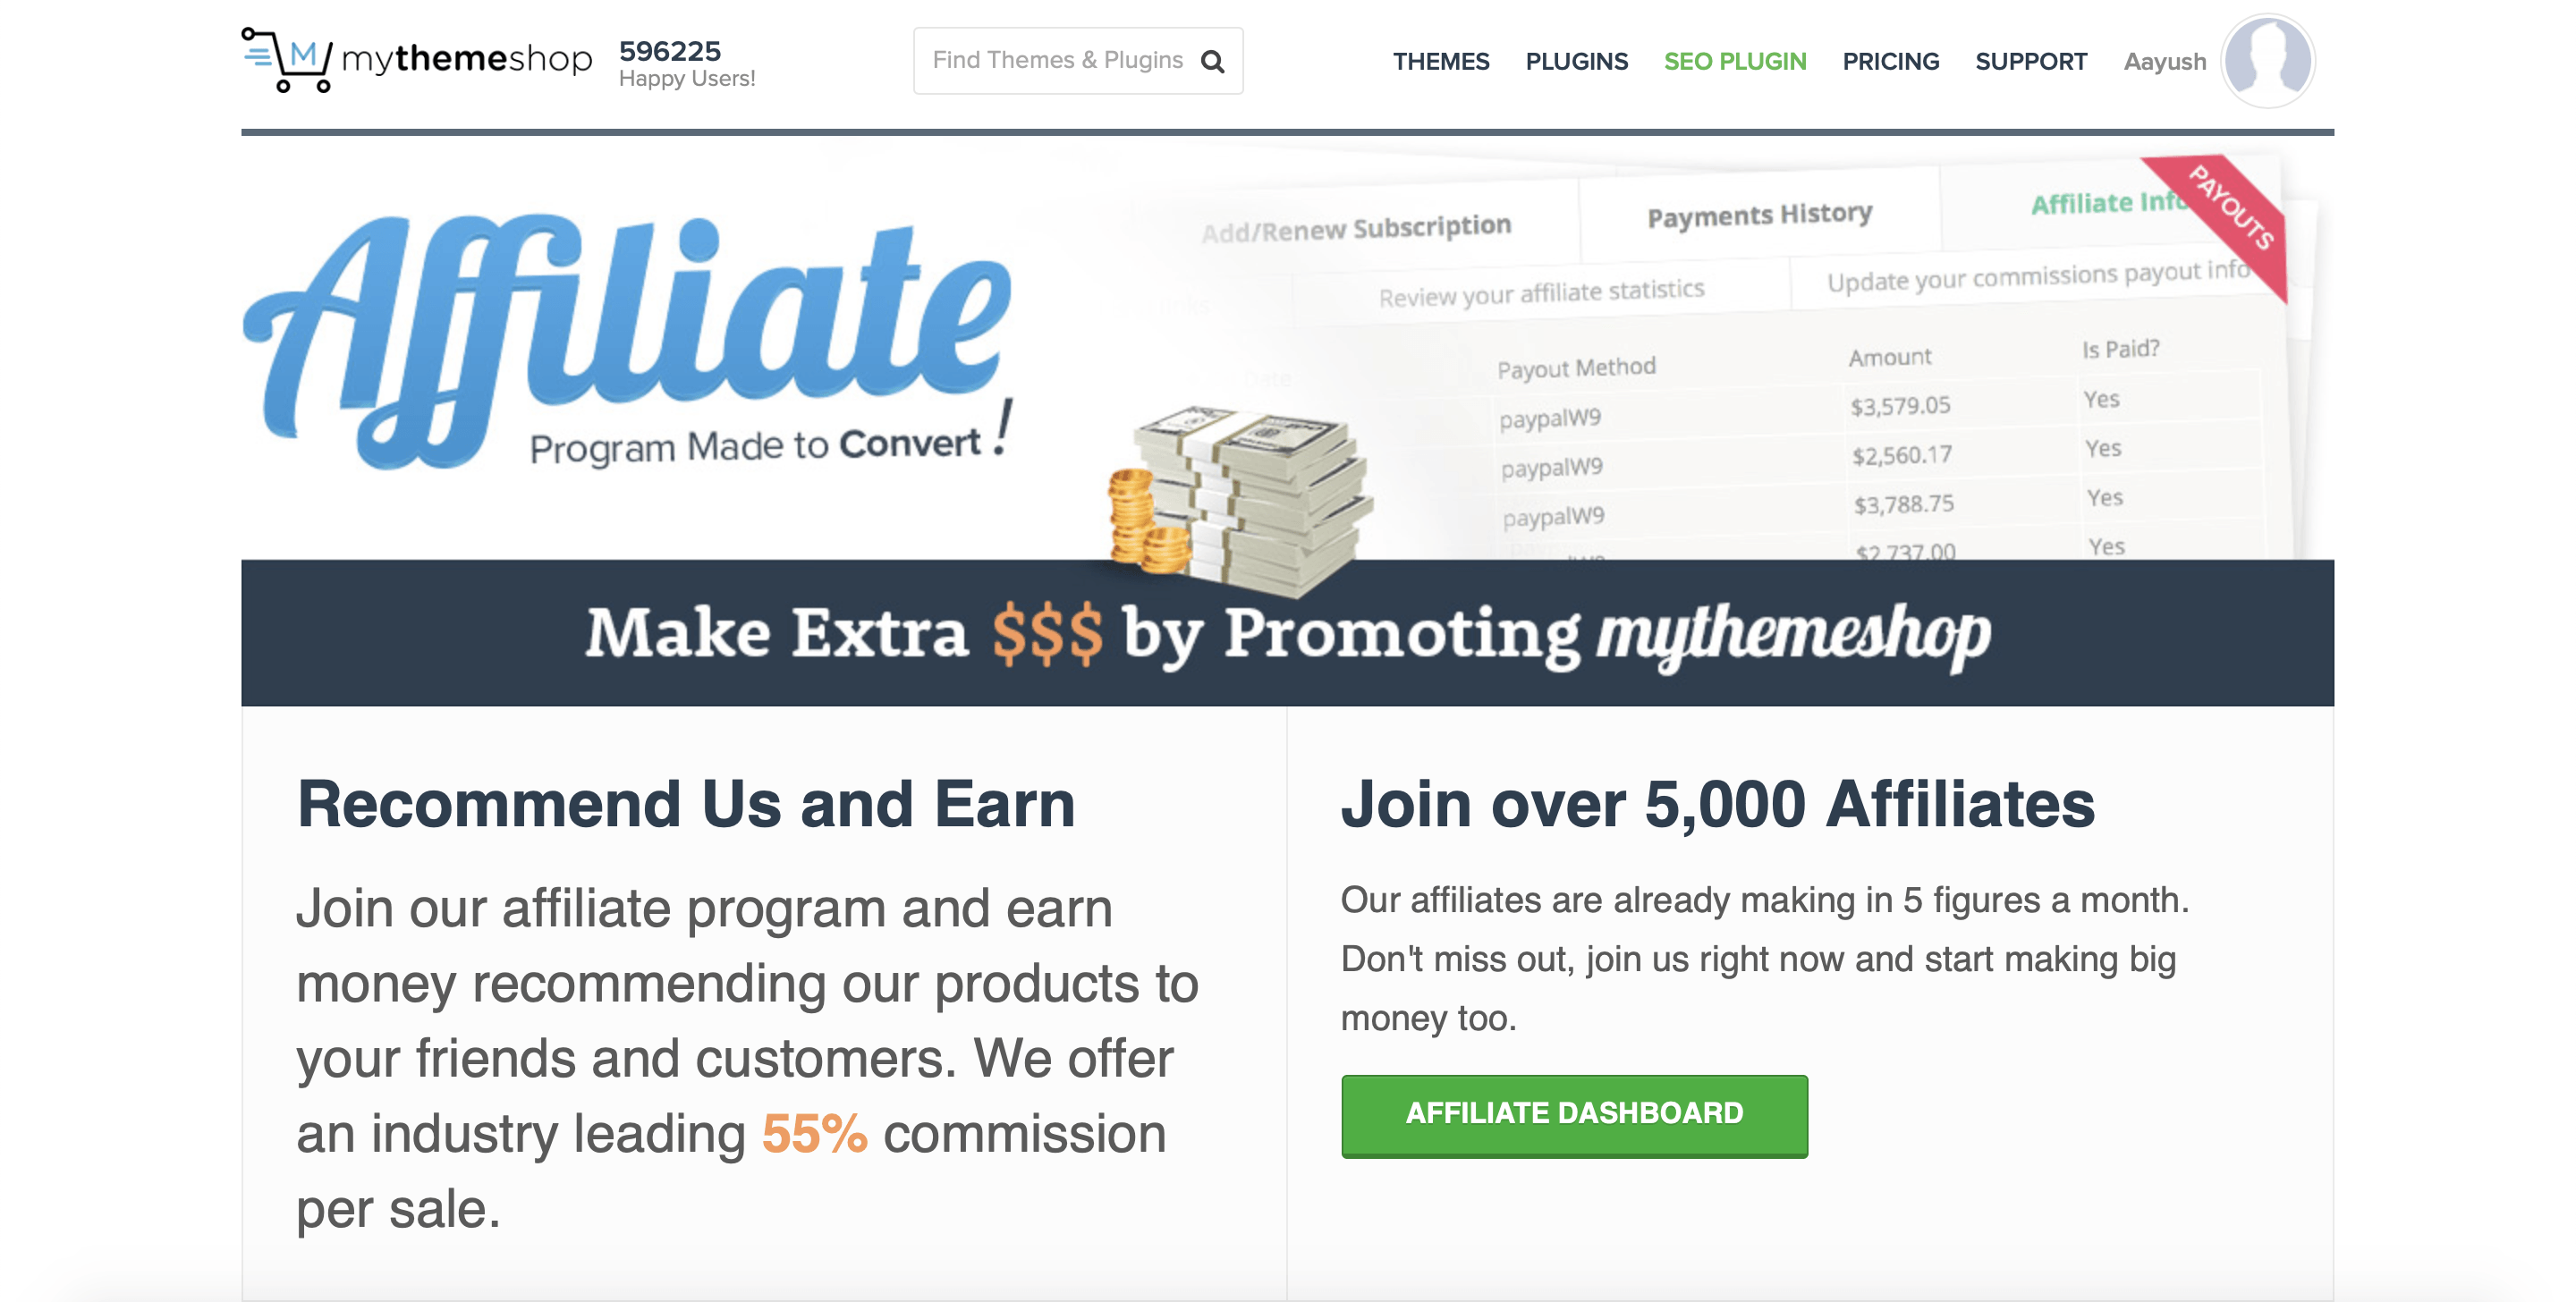 mythemeshop-affiliate-program